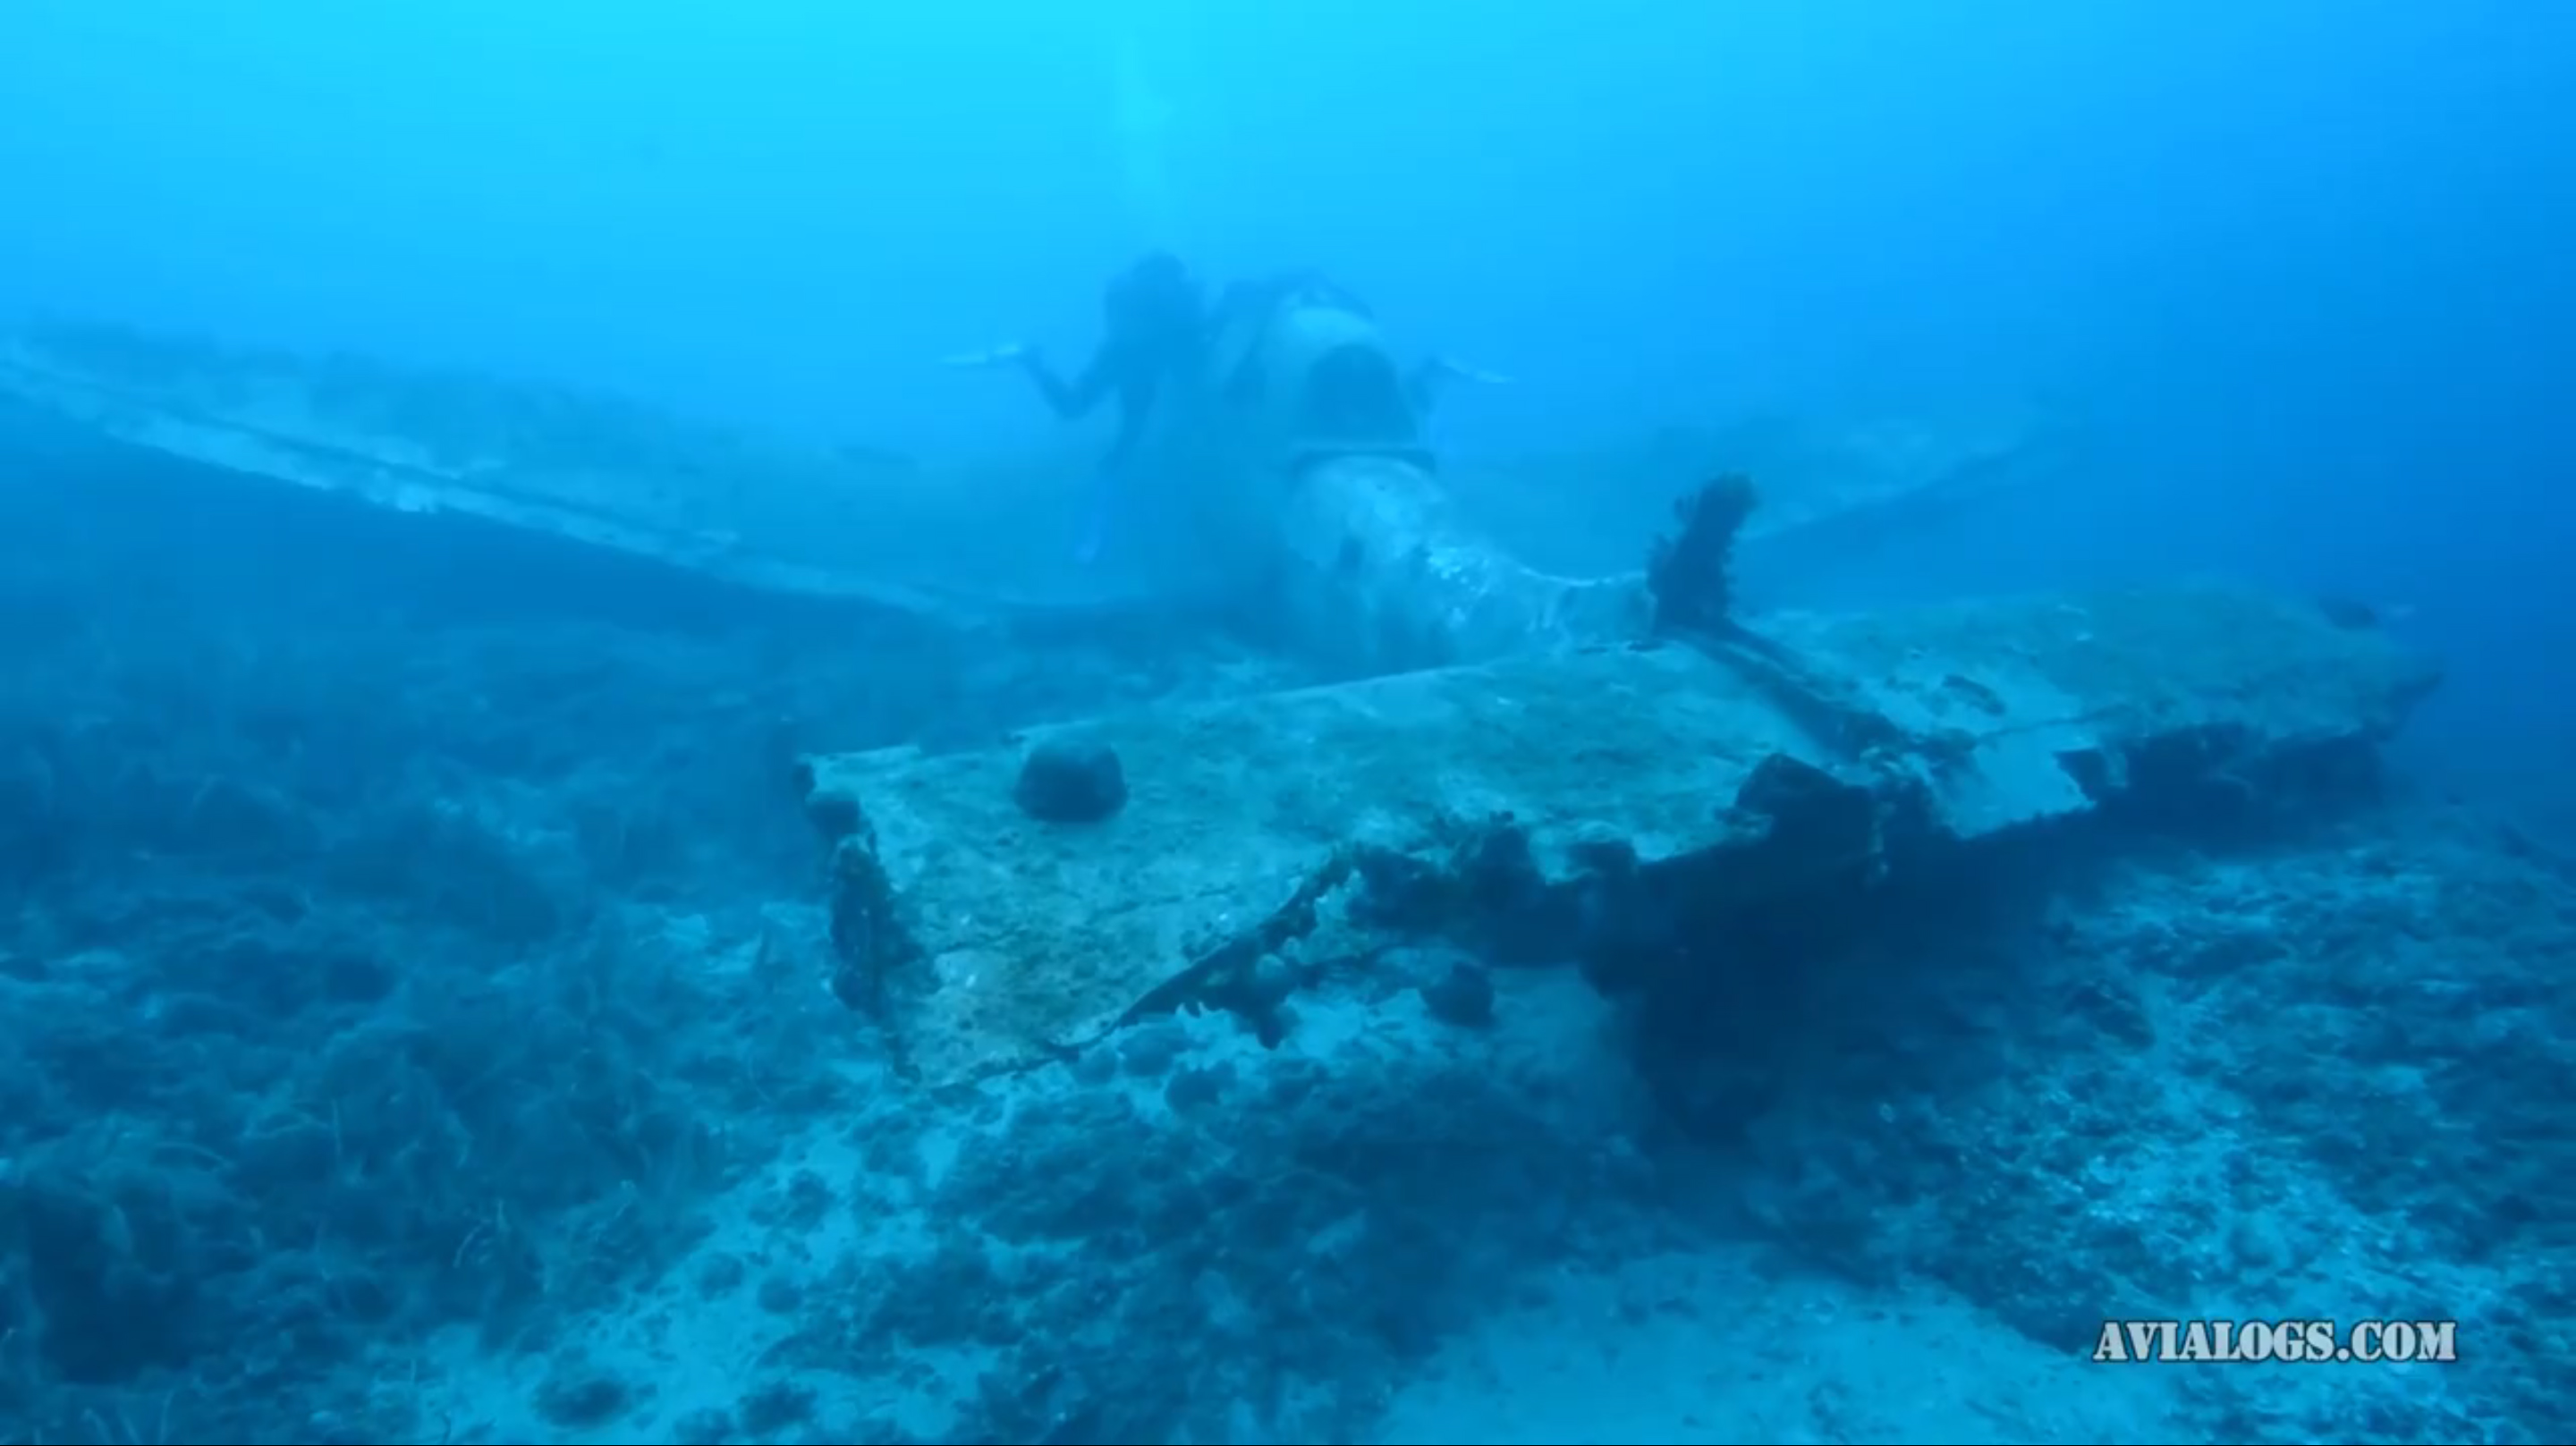 The sunken Stuka in the Mediterranean waters off Croatia. (screen capture from Hrvoslav Pavic video via Avialog.com)